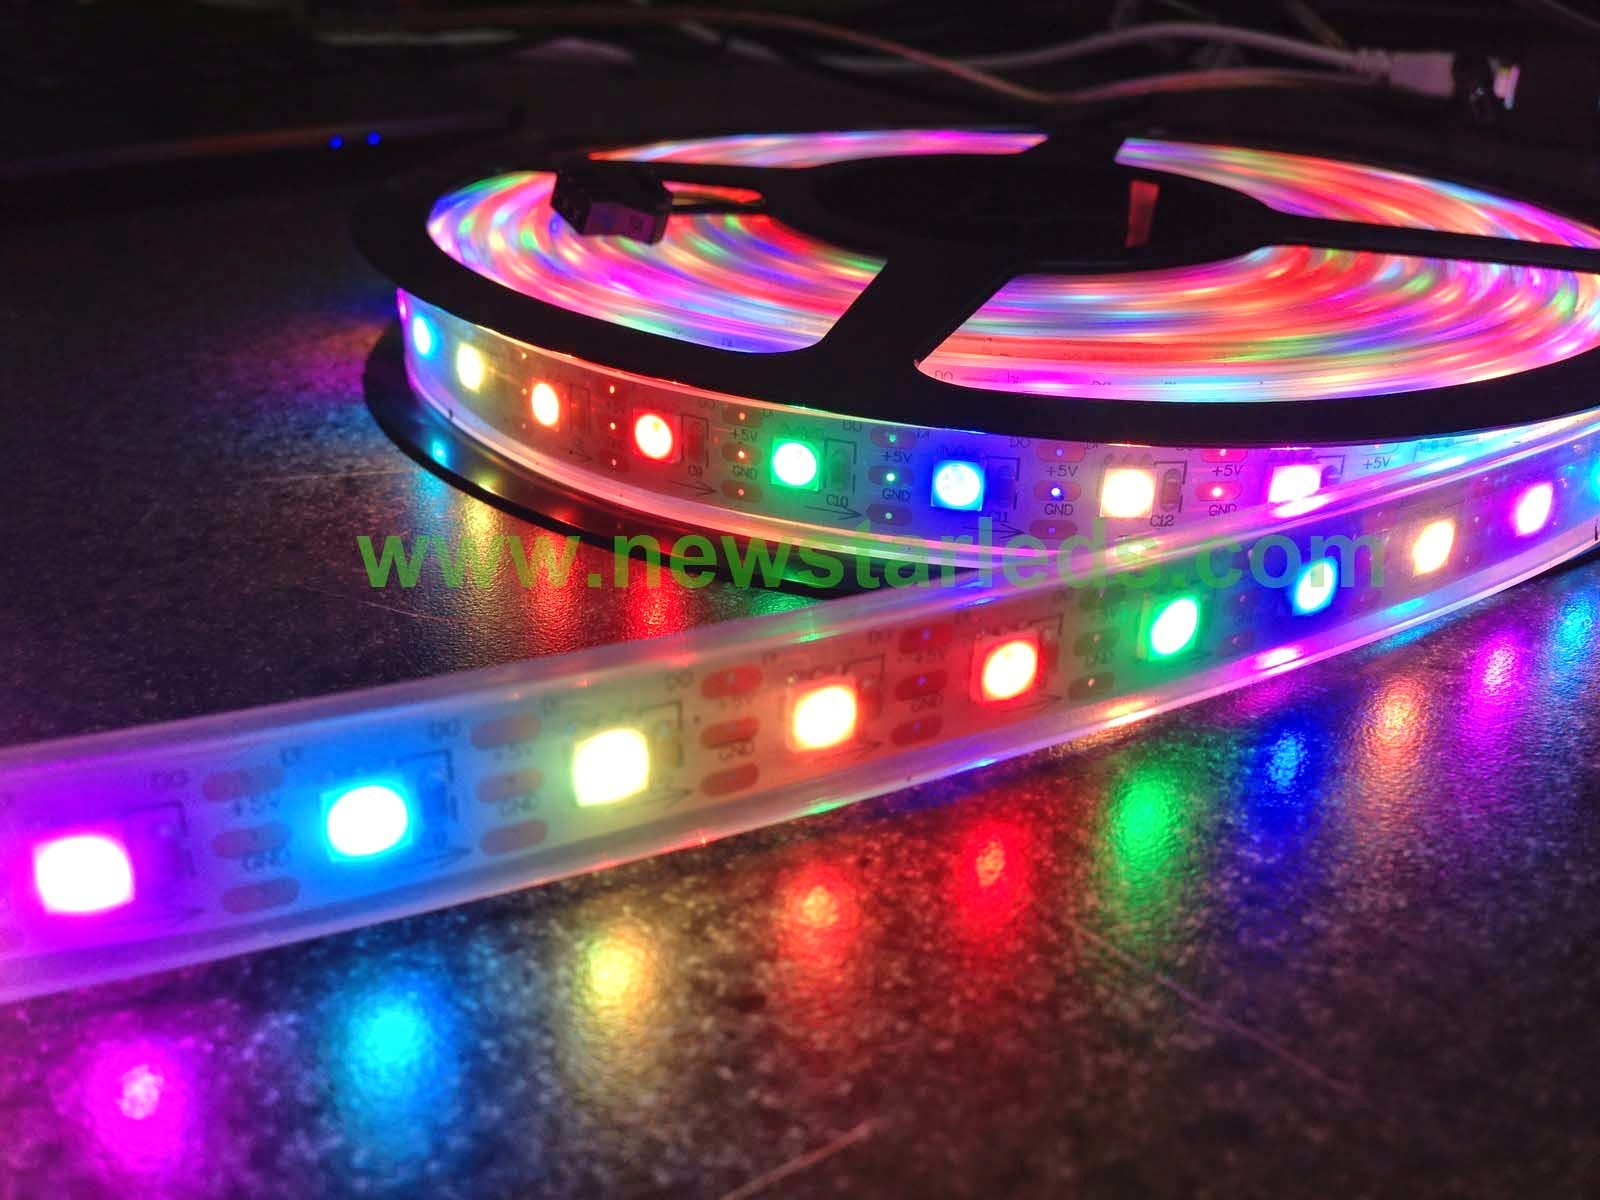 Magic color led strip for christmas is perfect~ NEWSTAR LED .newstarleds.com & NEWSTAR LED CO. LIMITED: Magic color led strip for christmas is ...